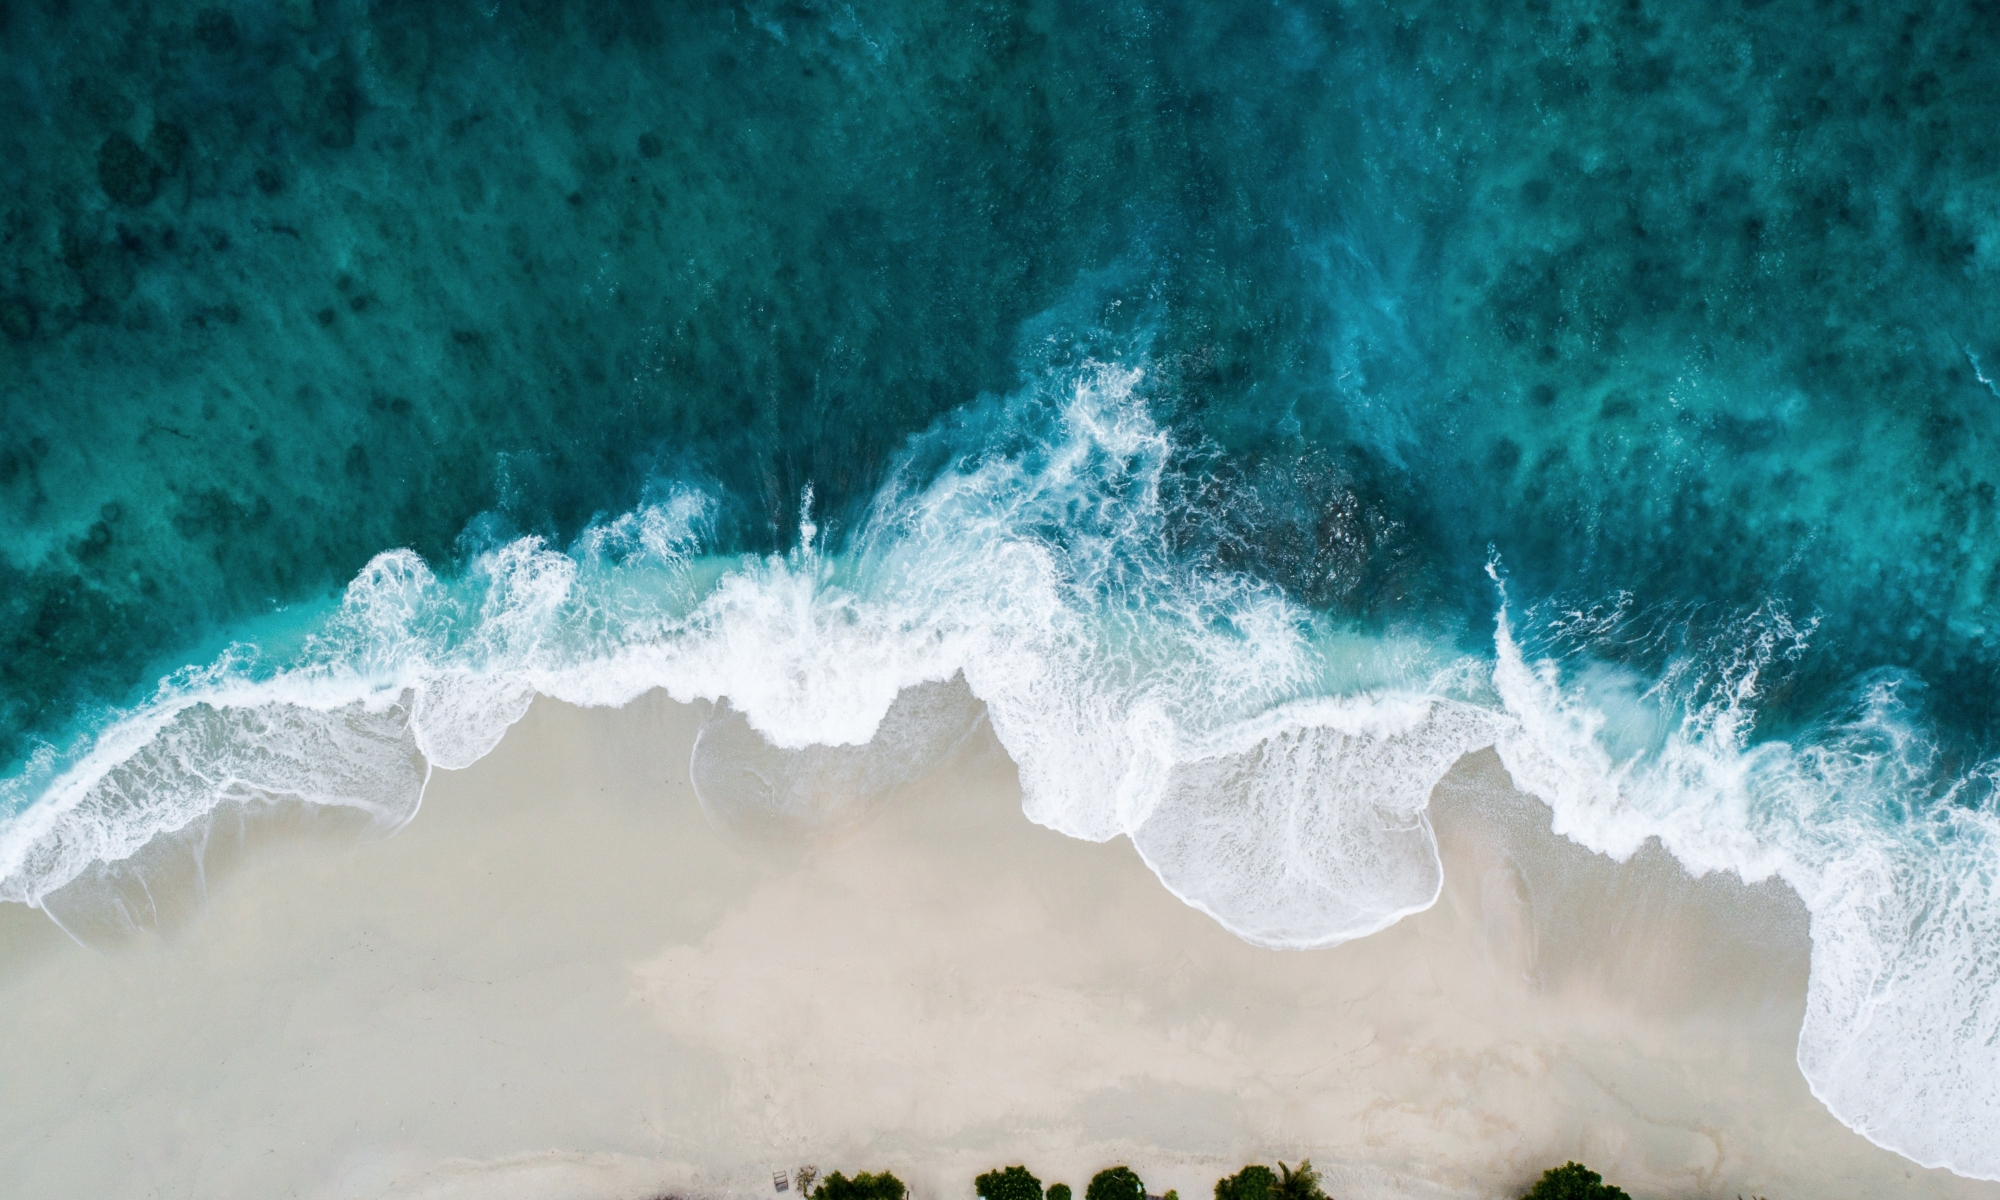 Ocean wave breaking on beach, Shifaaz Shamoon, Unsplash